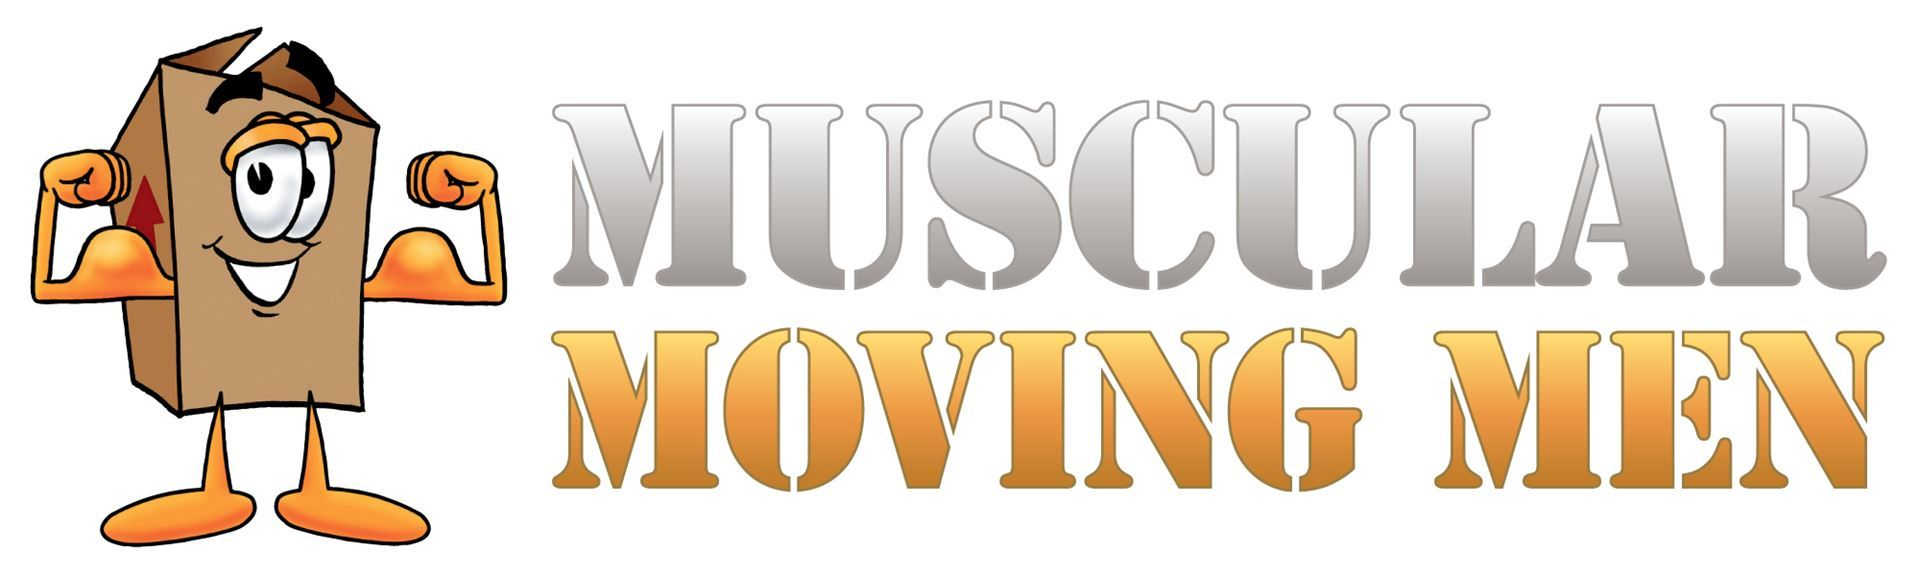 muscular moving men proud sponsor of golf and grow networking golf tournament in scottsdale az